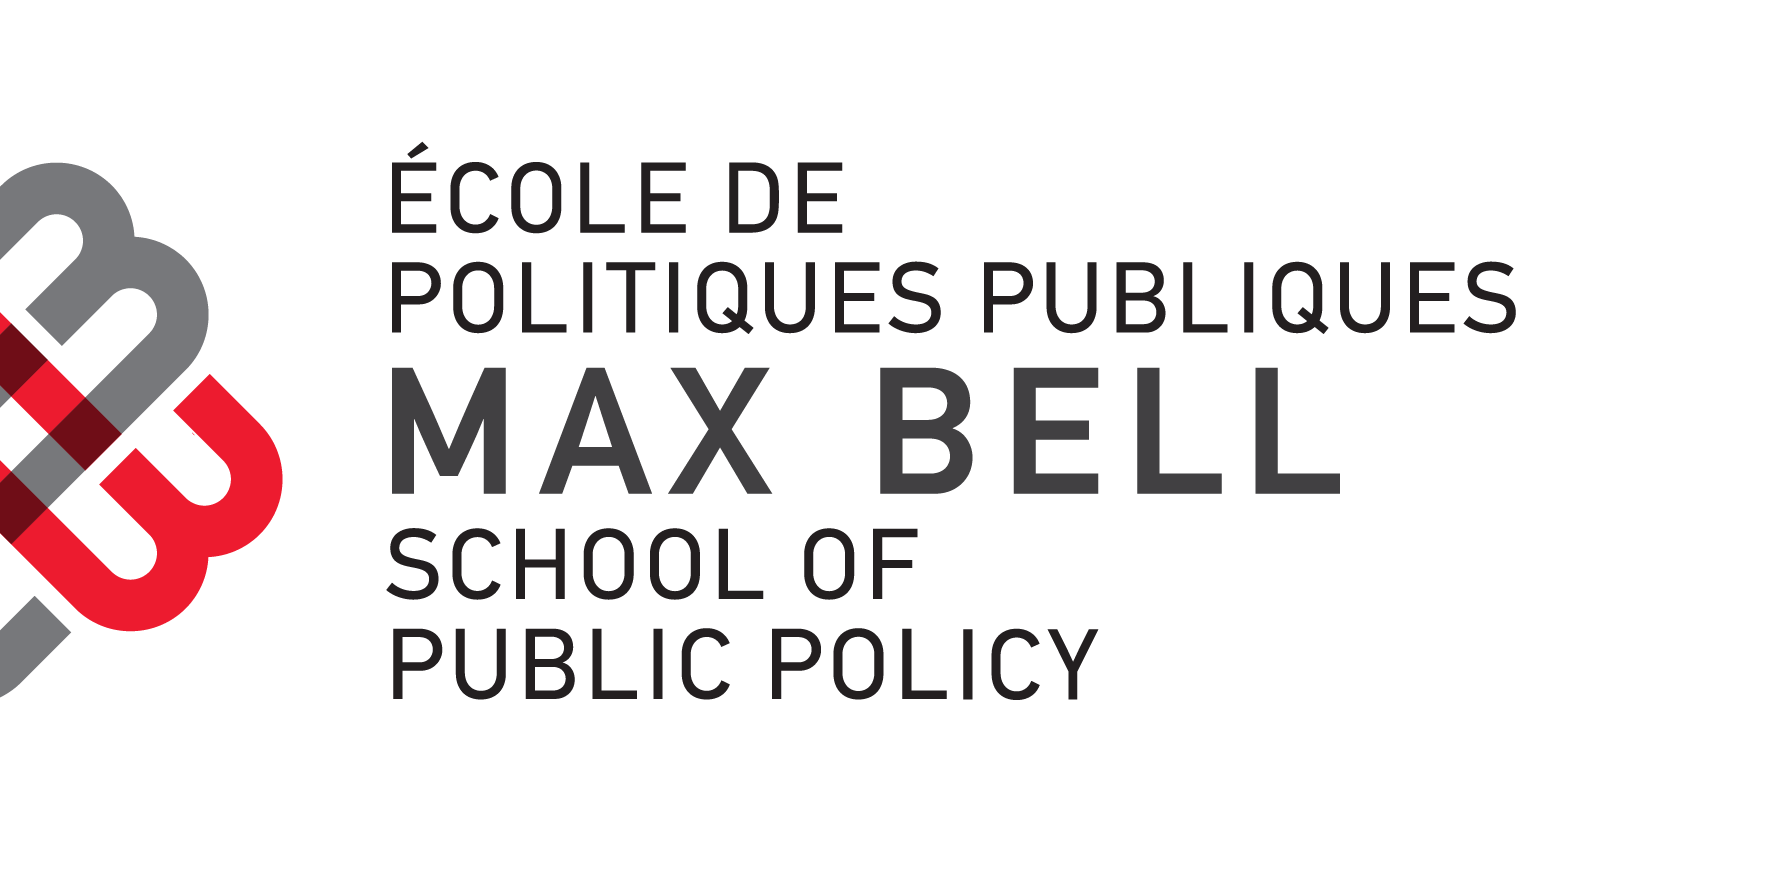 Max Bell School of Public Policy